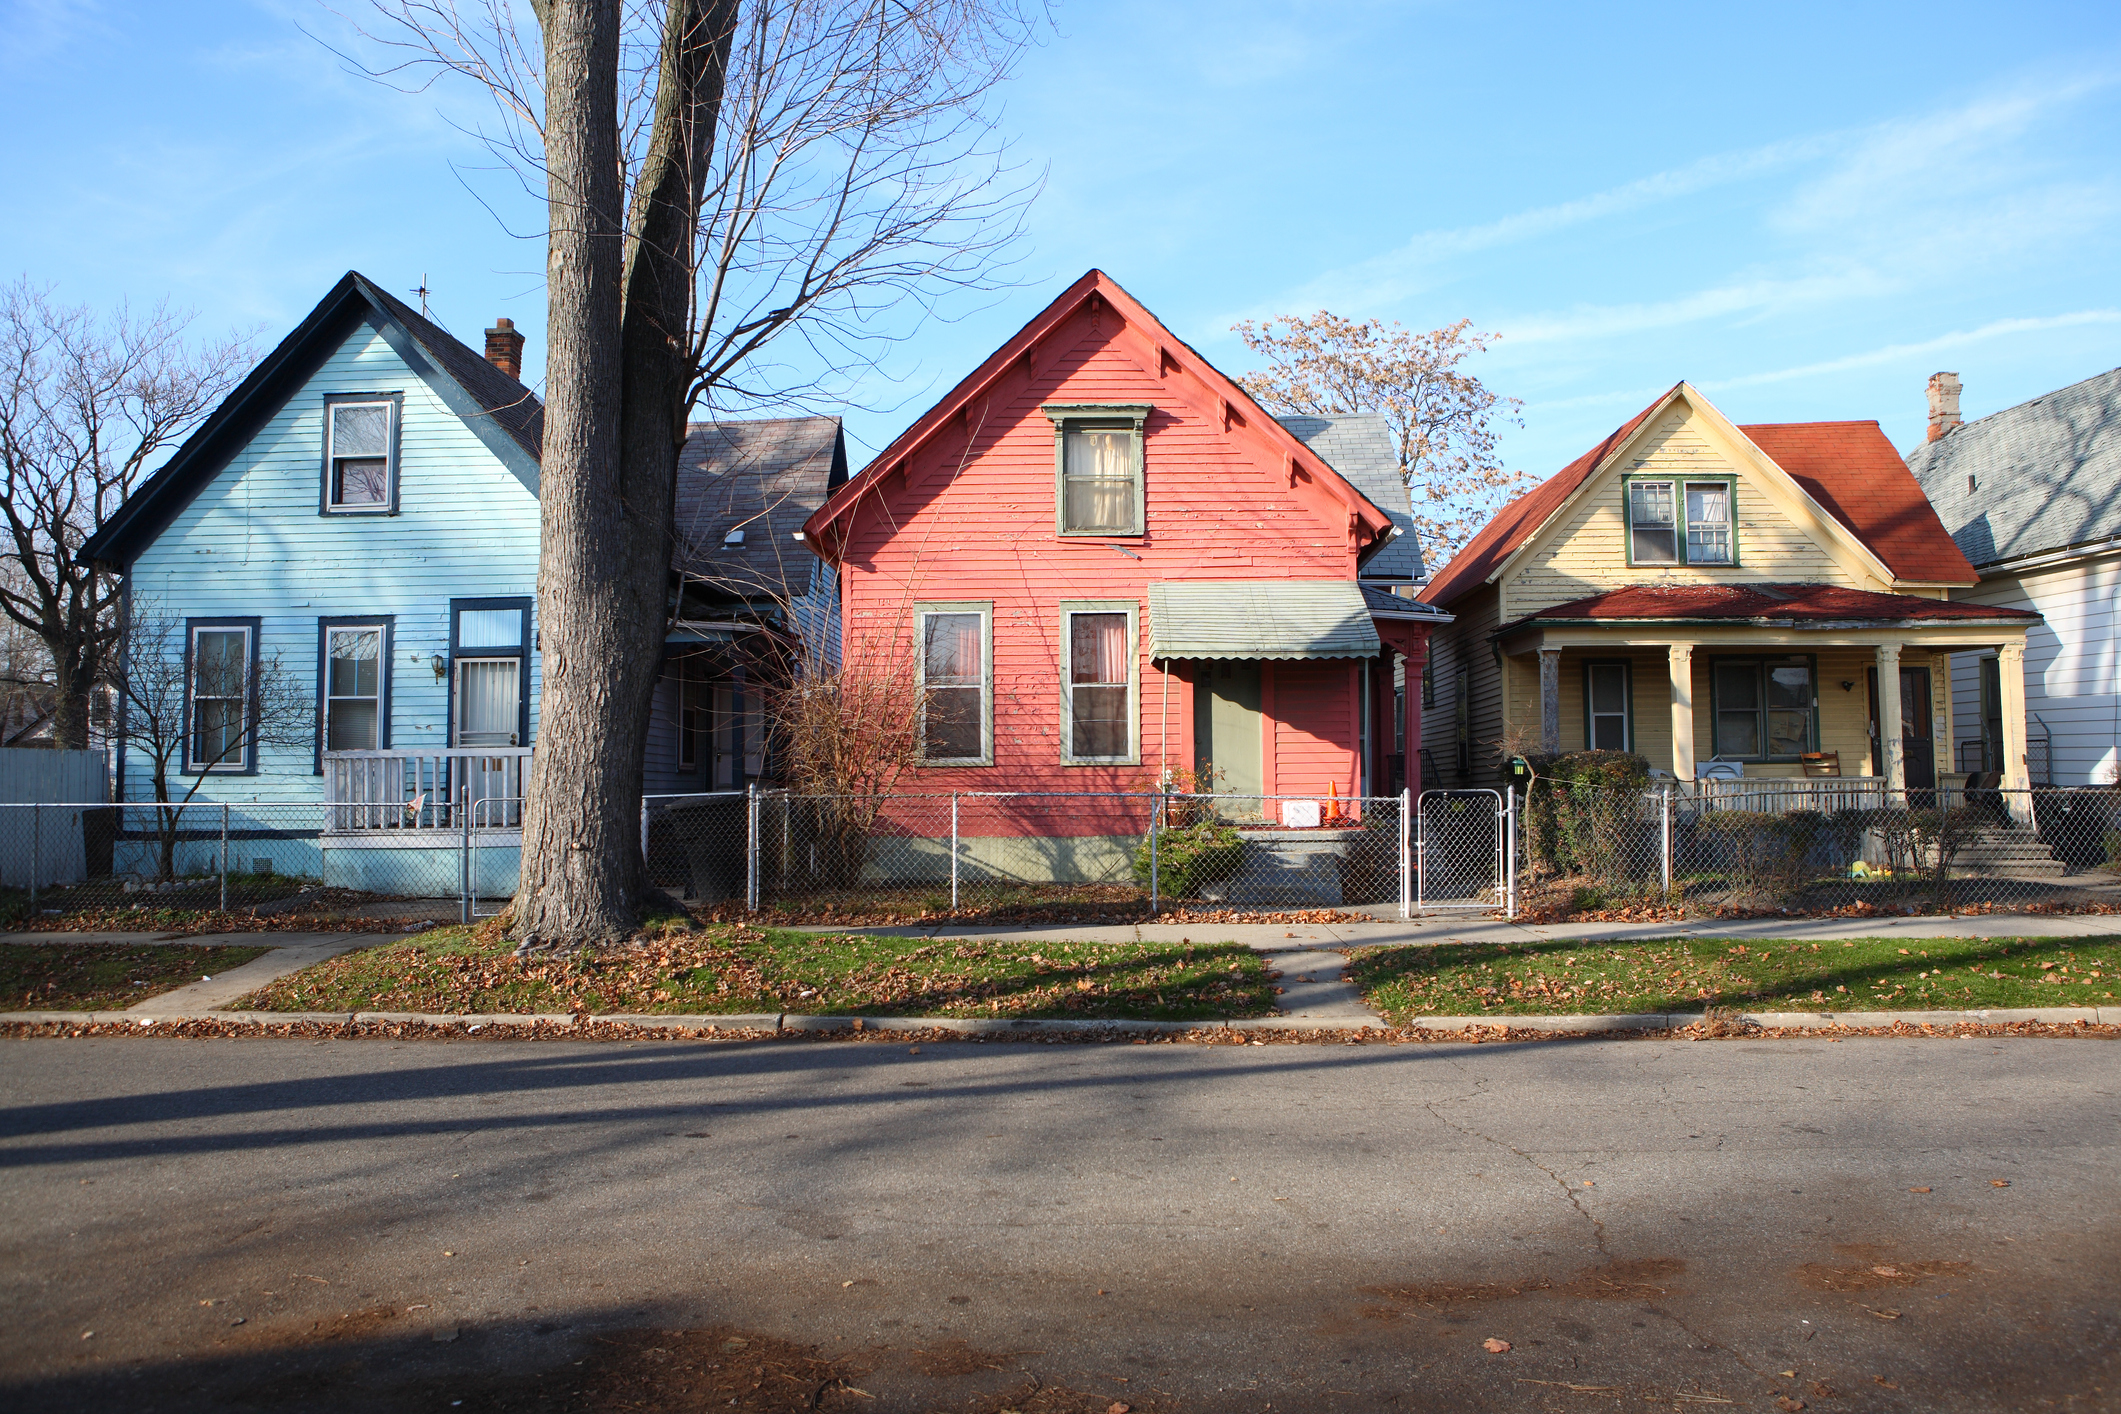 Colorful Houses in a neighborhood on the east side of Detroit